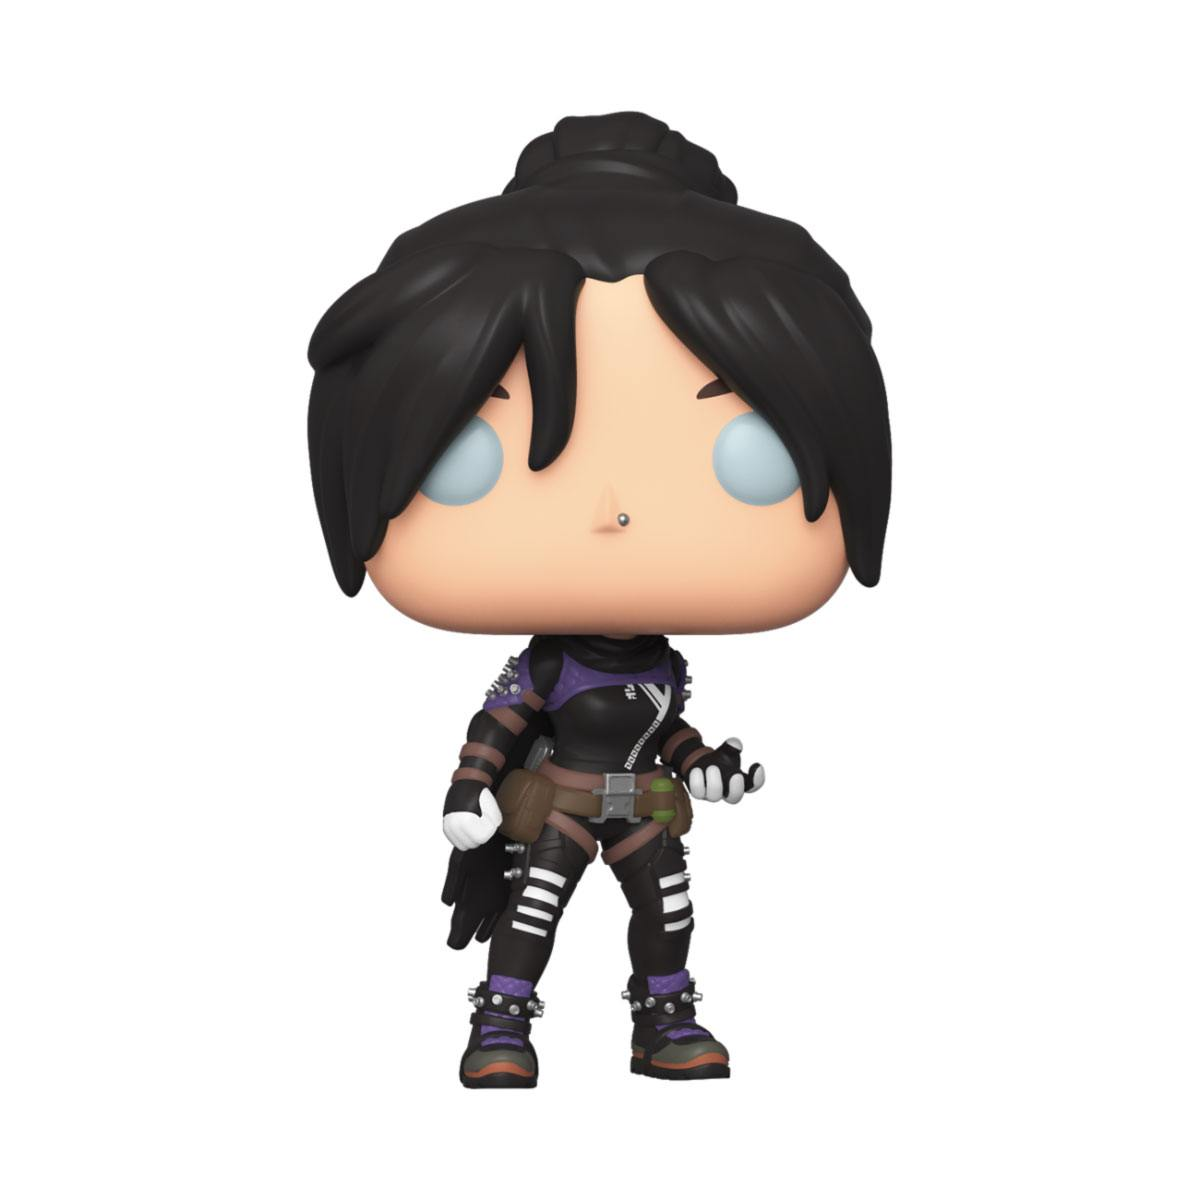 Apex Legends POP! Games Vinyl Figure Wraith 9 cm